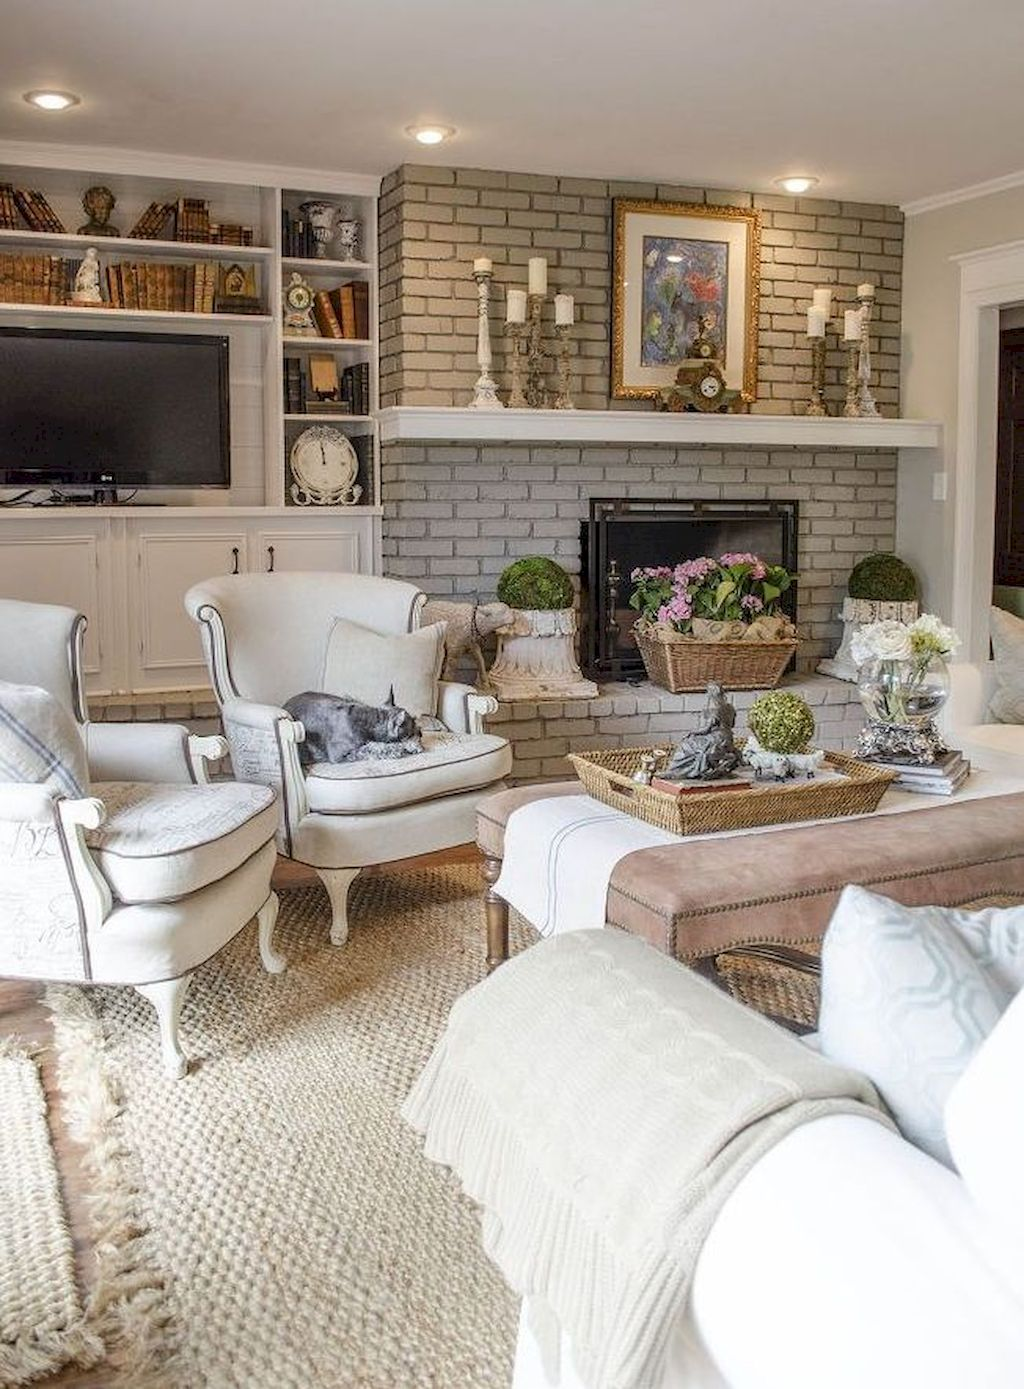 Cool 90 Gorgeous French Country Living Room Decor Ideas Country Decor Country Living Room French Country Decorating Living Room French Country Living Room